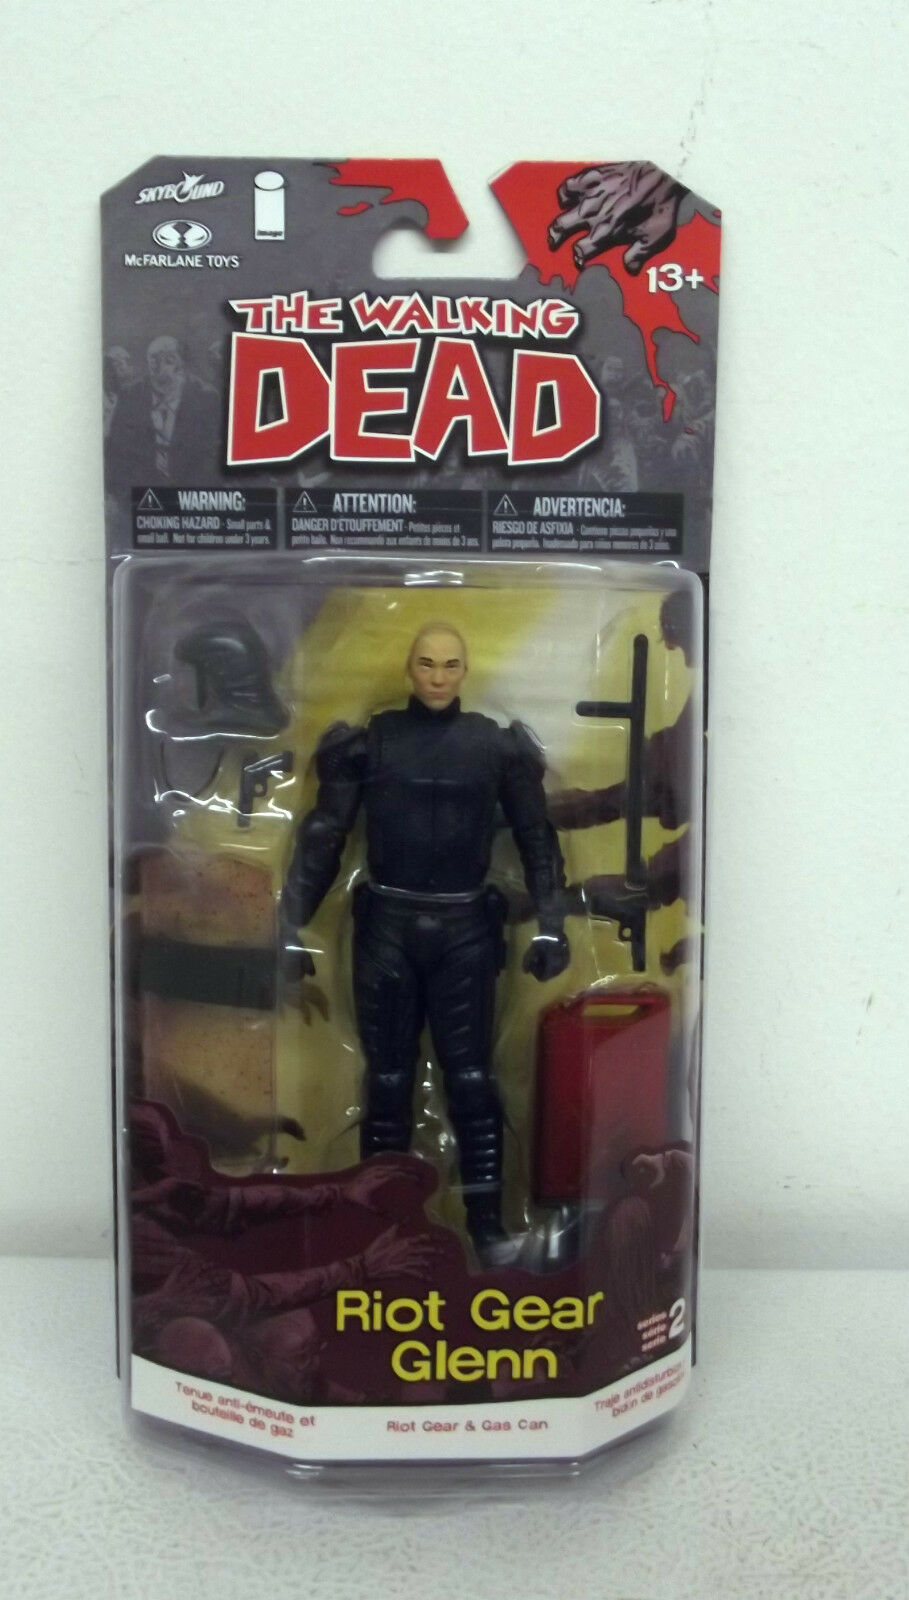 2013 McFarlane Toys The Walking Dead Series 2 Riot Gear Glenn Action Figure #TWD-08